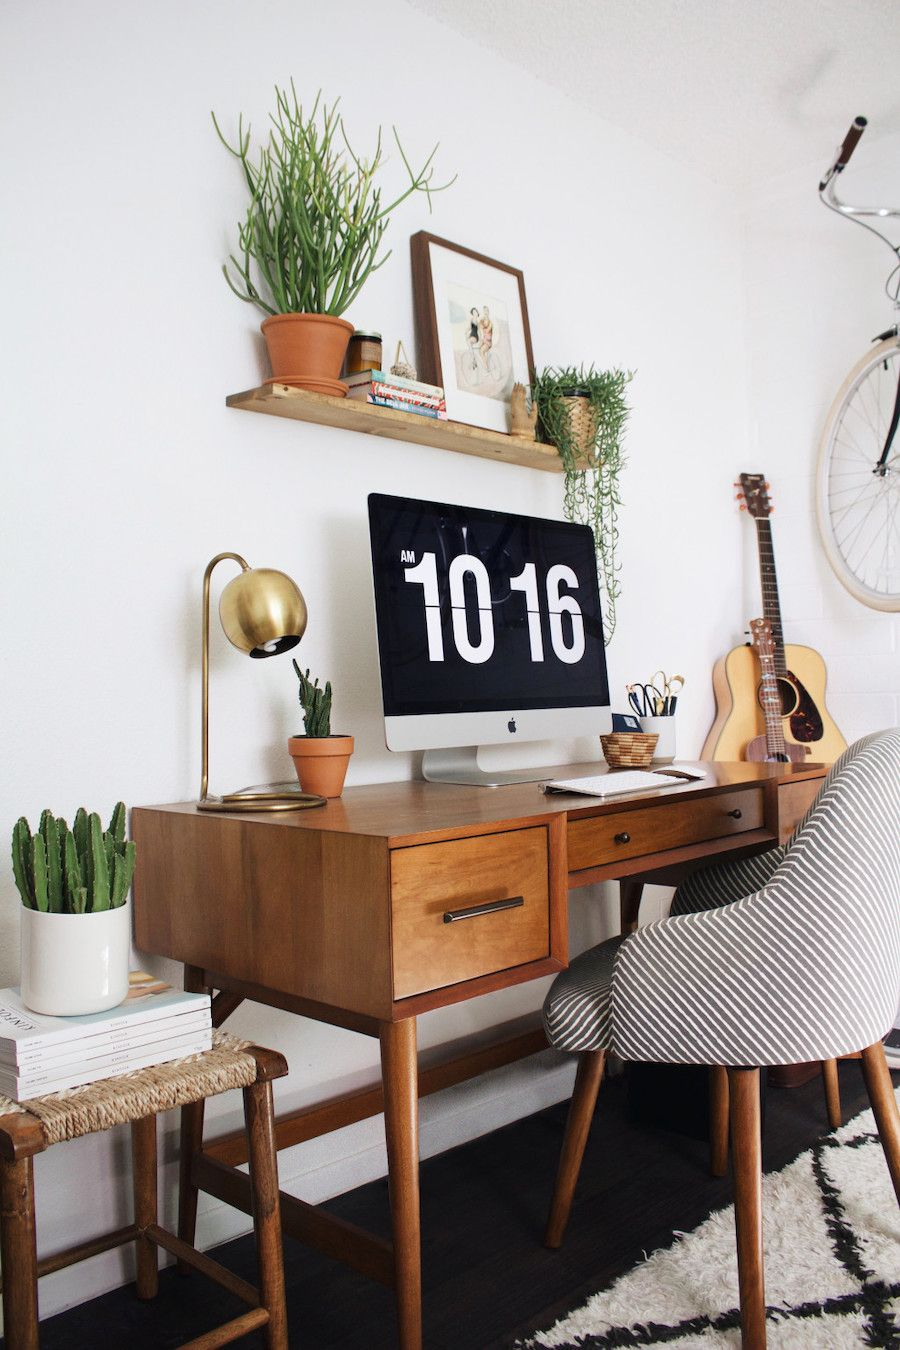 Mid Century Modern Desks Don T Have To Be Sourced From An Antique Shop Or Yard Sale Nowadays The Home Office Design Home Office Decor Mid Century Modern Desk